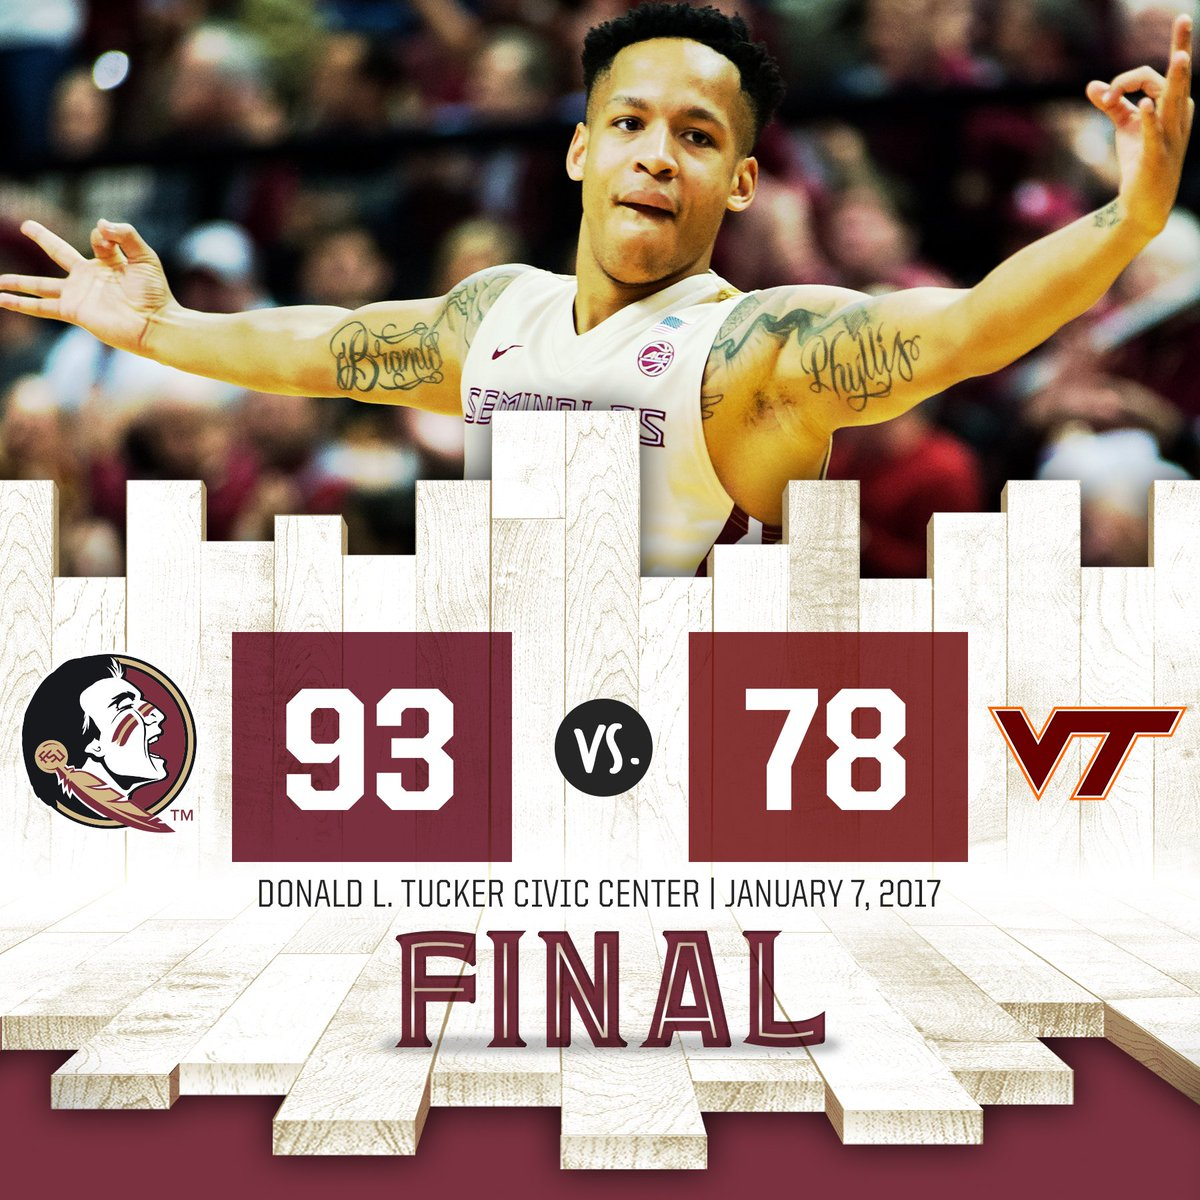 FINAL!  #Noles beat Virginia Tech for their 11th win in a row! https://t.co/GYrALk6QX1